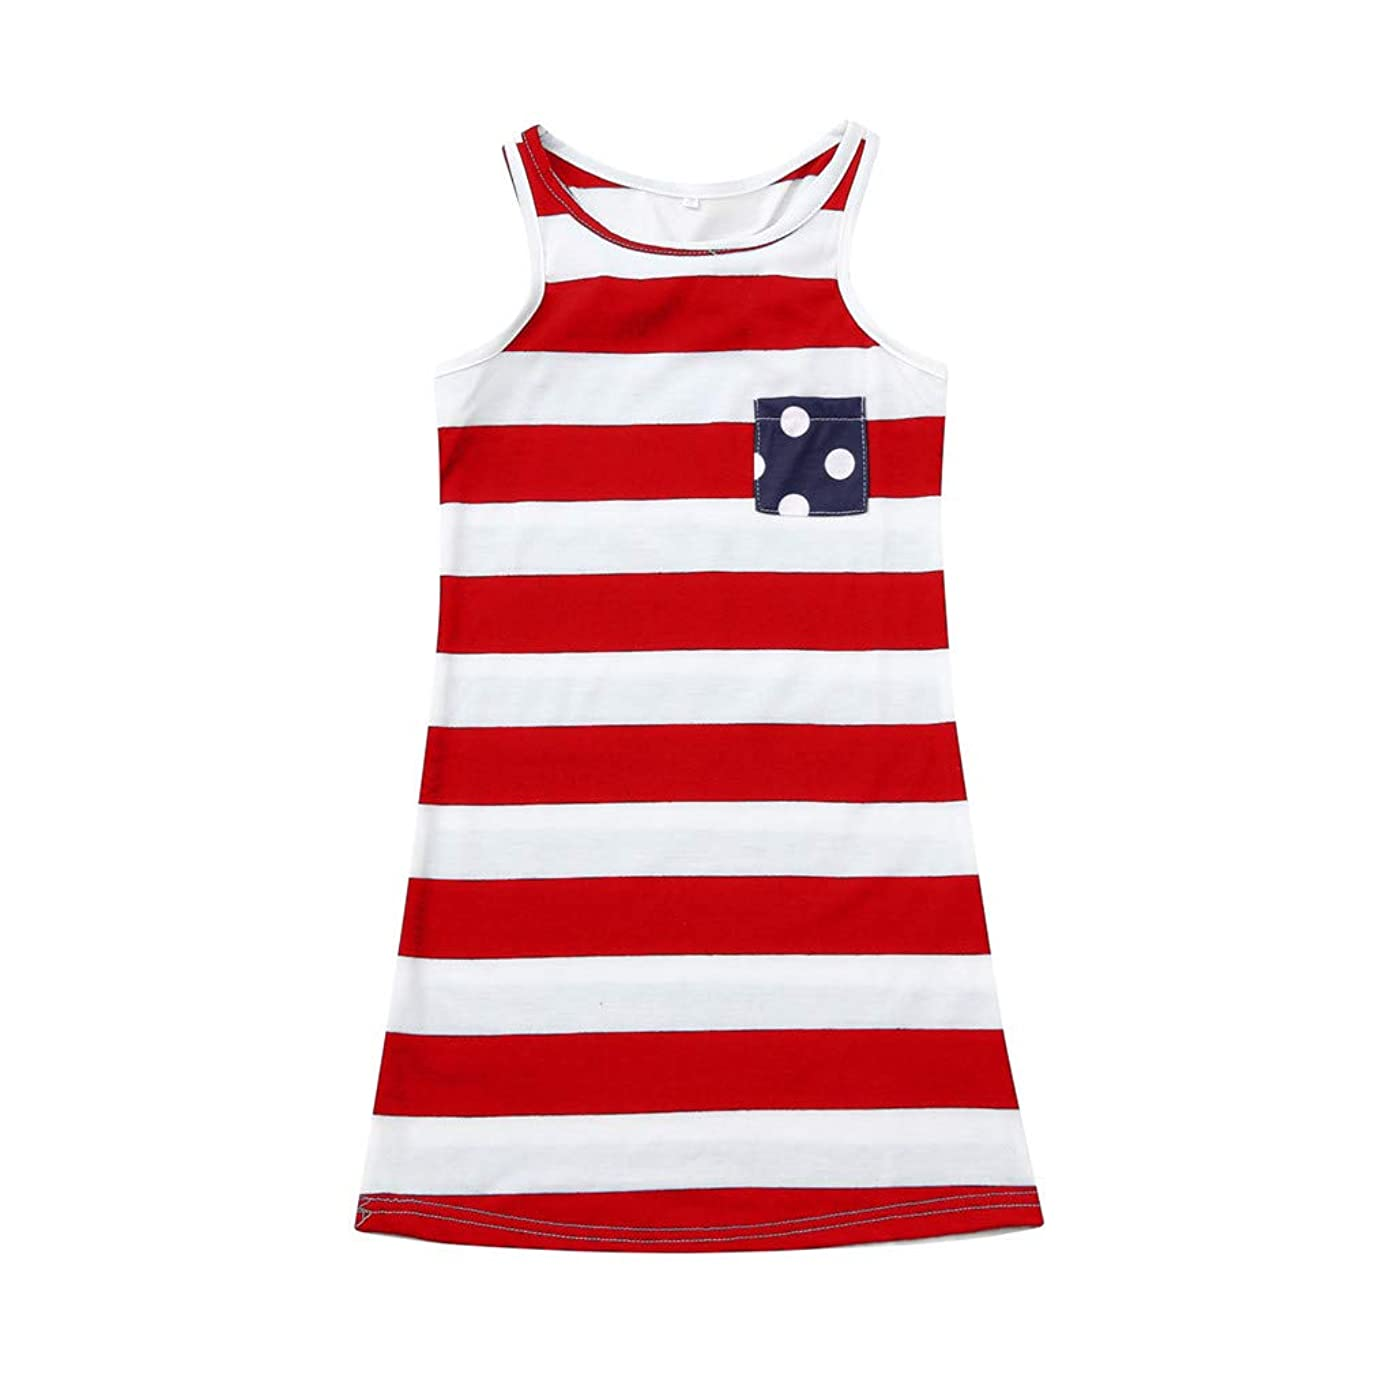 4th of July Family Outfits,SMALLE??? Mommy and Me American Flag Striped Dot Stitching Patriotic Maxi Dresses